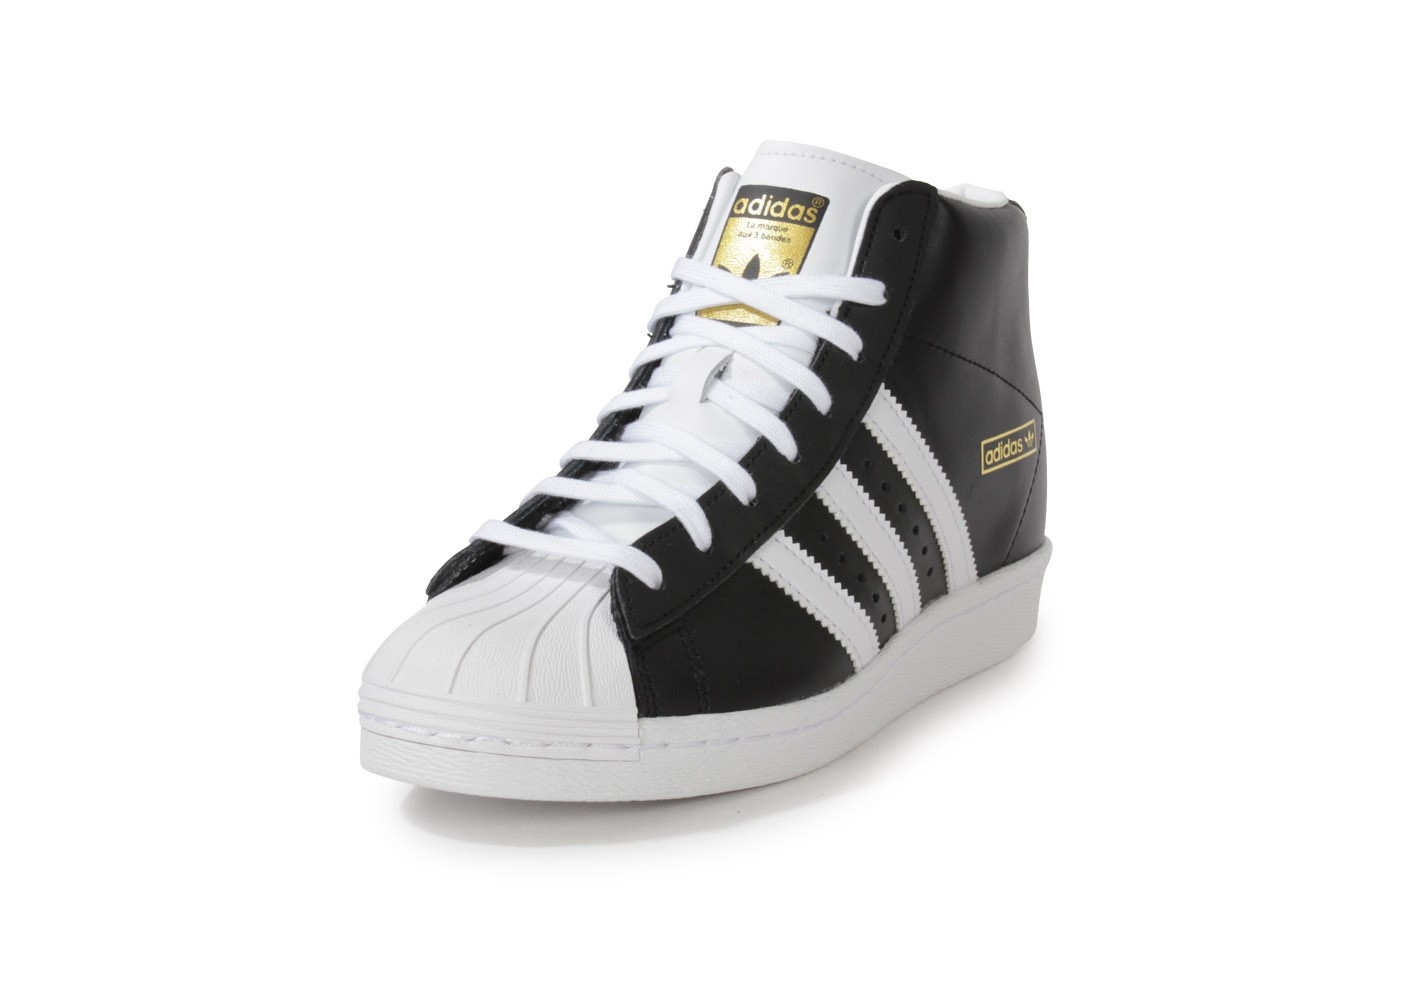 adidas superstar brooklyn,Chaussures Homme Pour Running